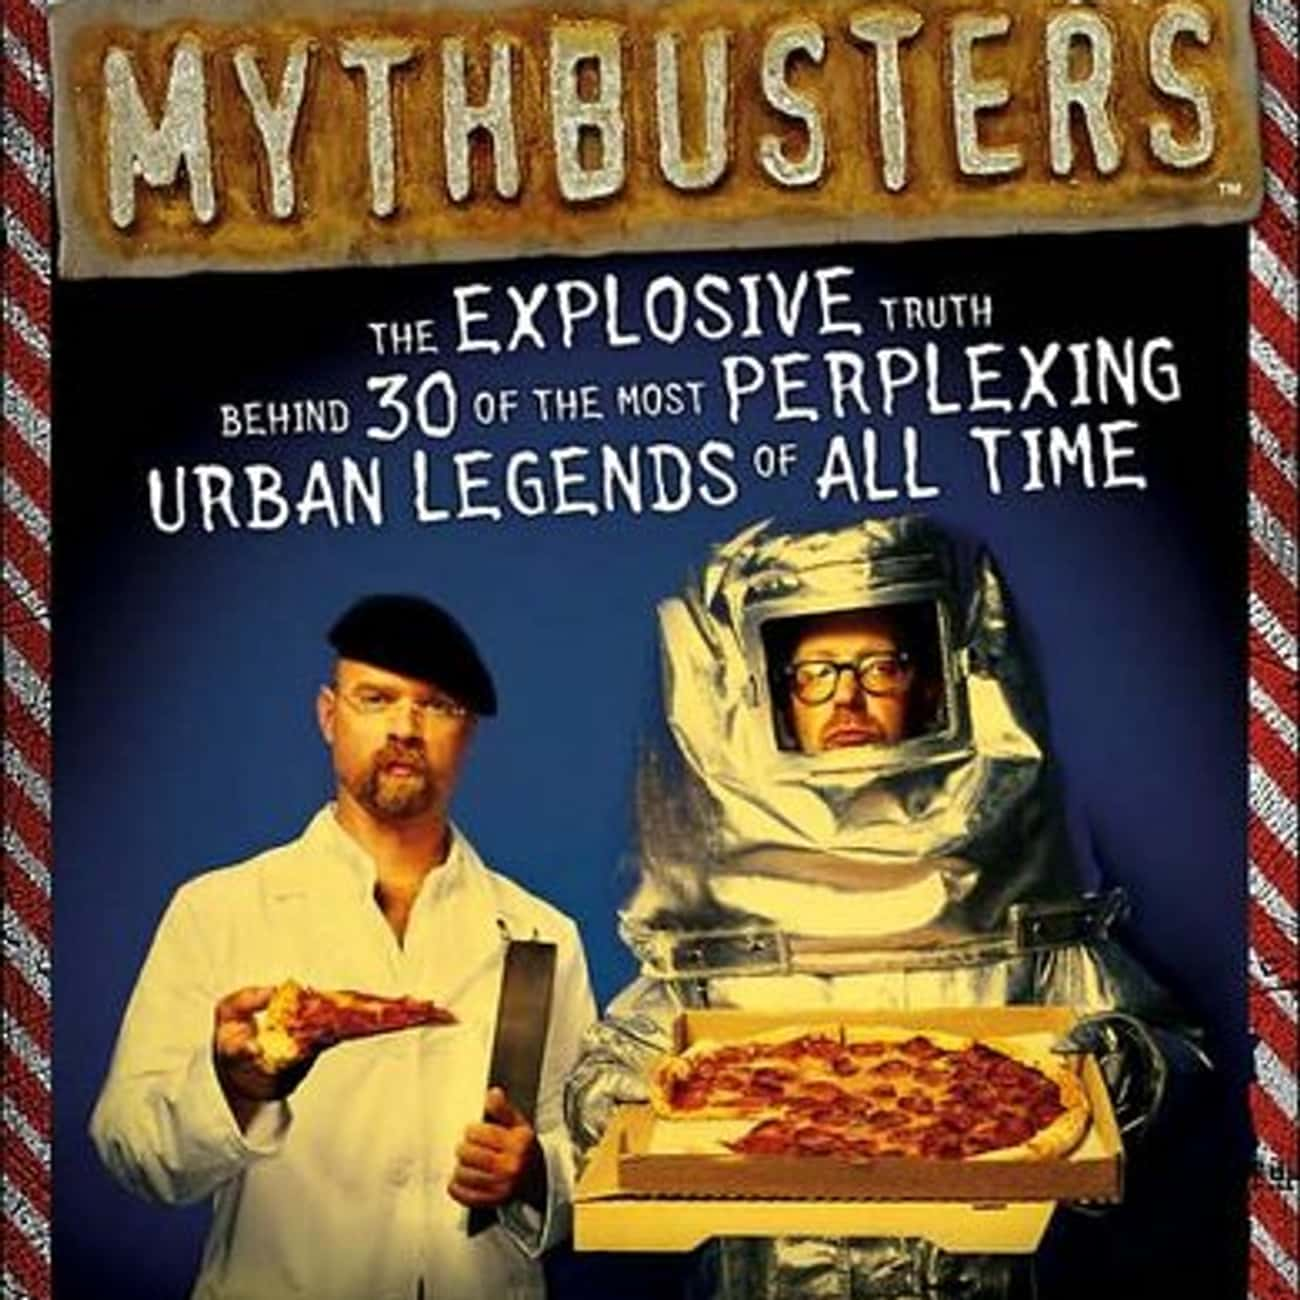 MythBusters Season 2 is listed (or ranked) 1 on the list The Best Seasons of MythBusters